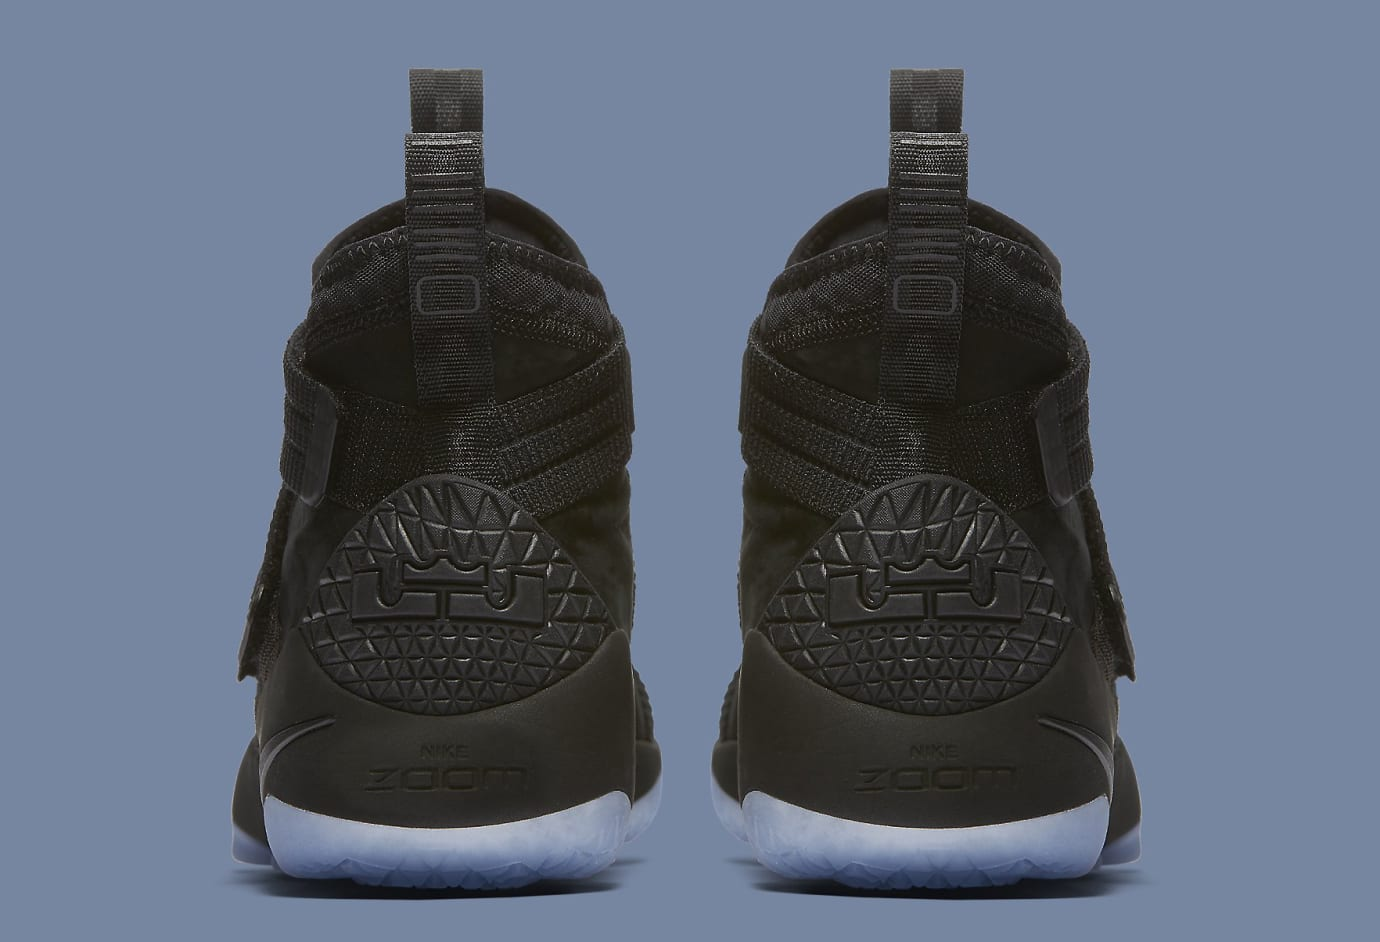 741b383654f9 Black Ice Nike LeBron Soldier 11 897646-001 Strive for Greatness ...